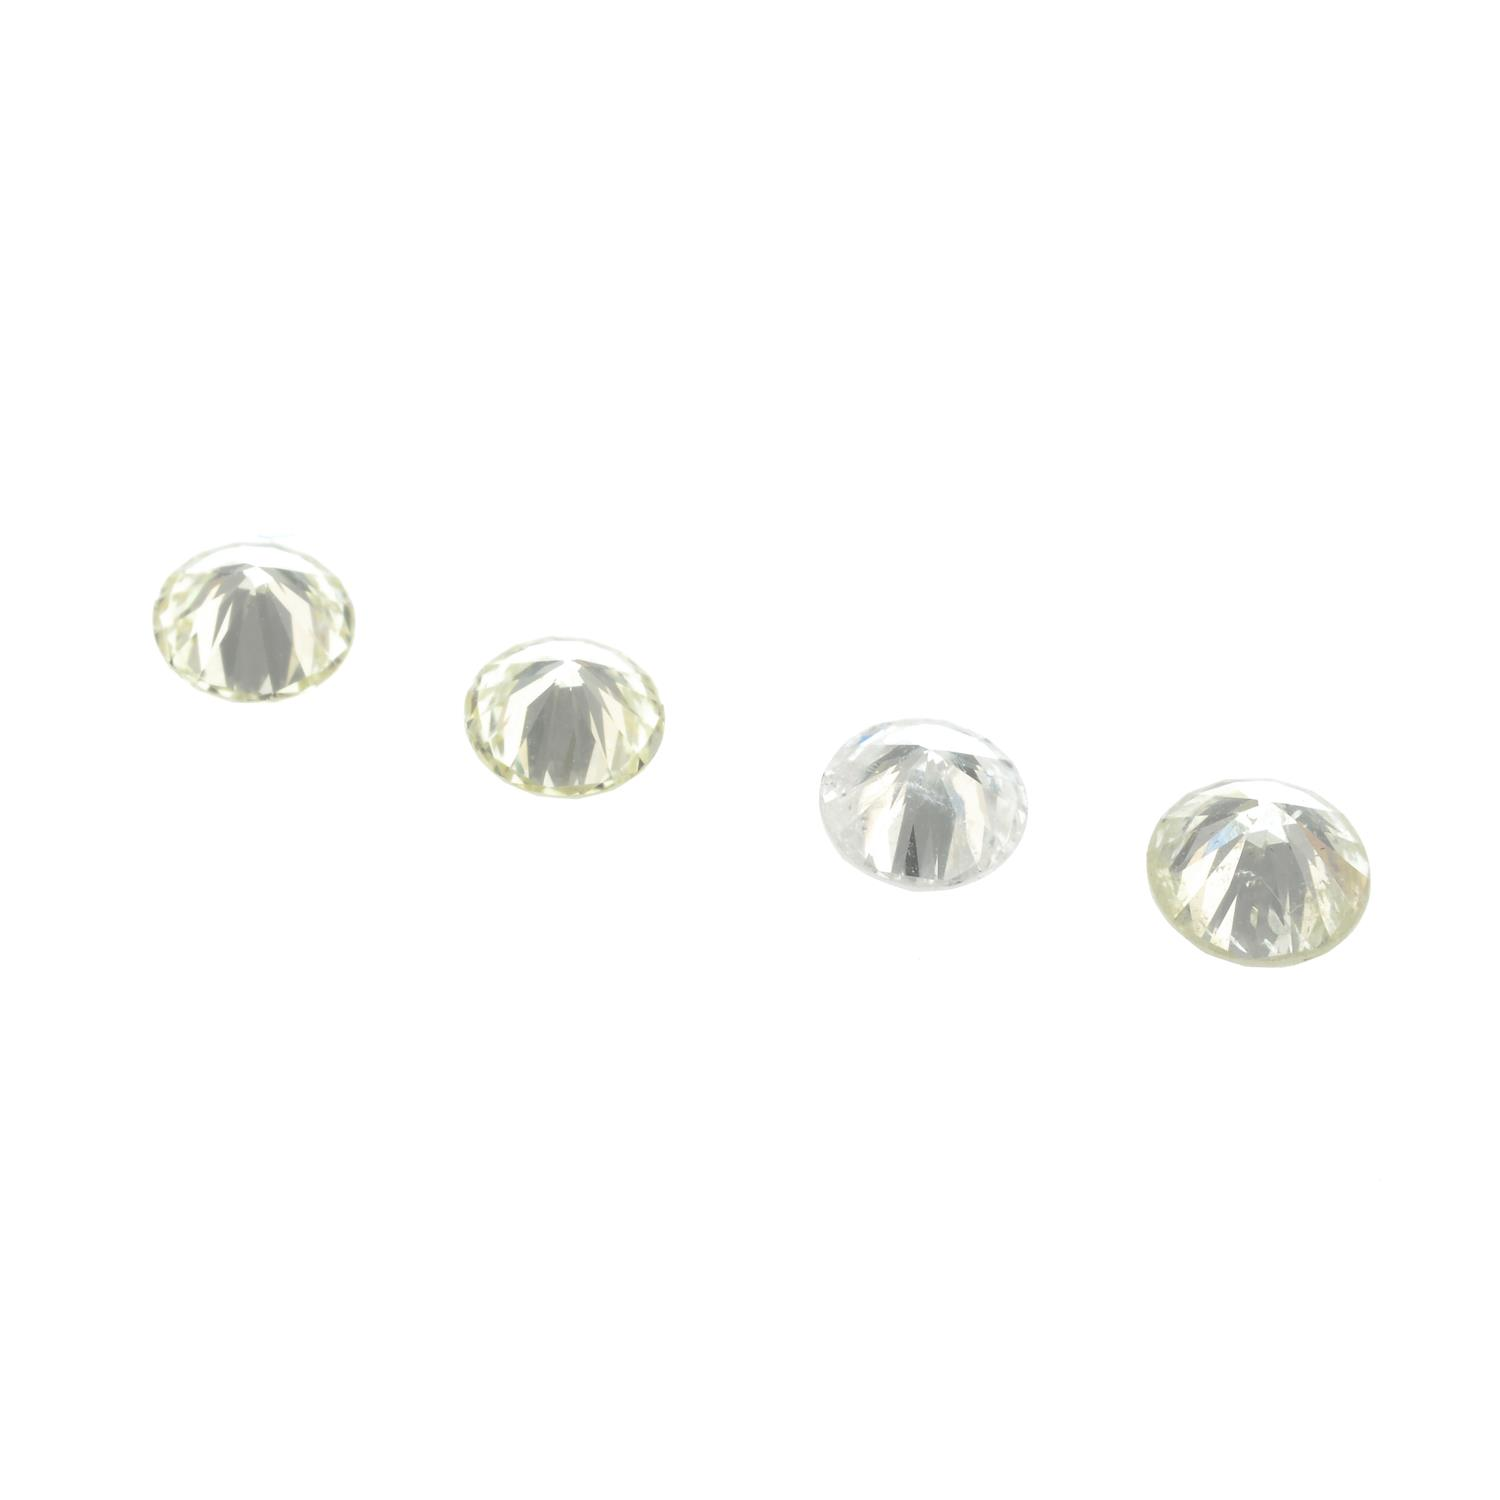 Five brilliant-cut diamonds, total weight 0.99ct. - Image 2 of 2